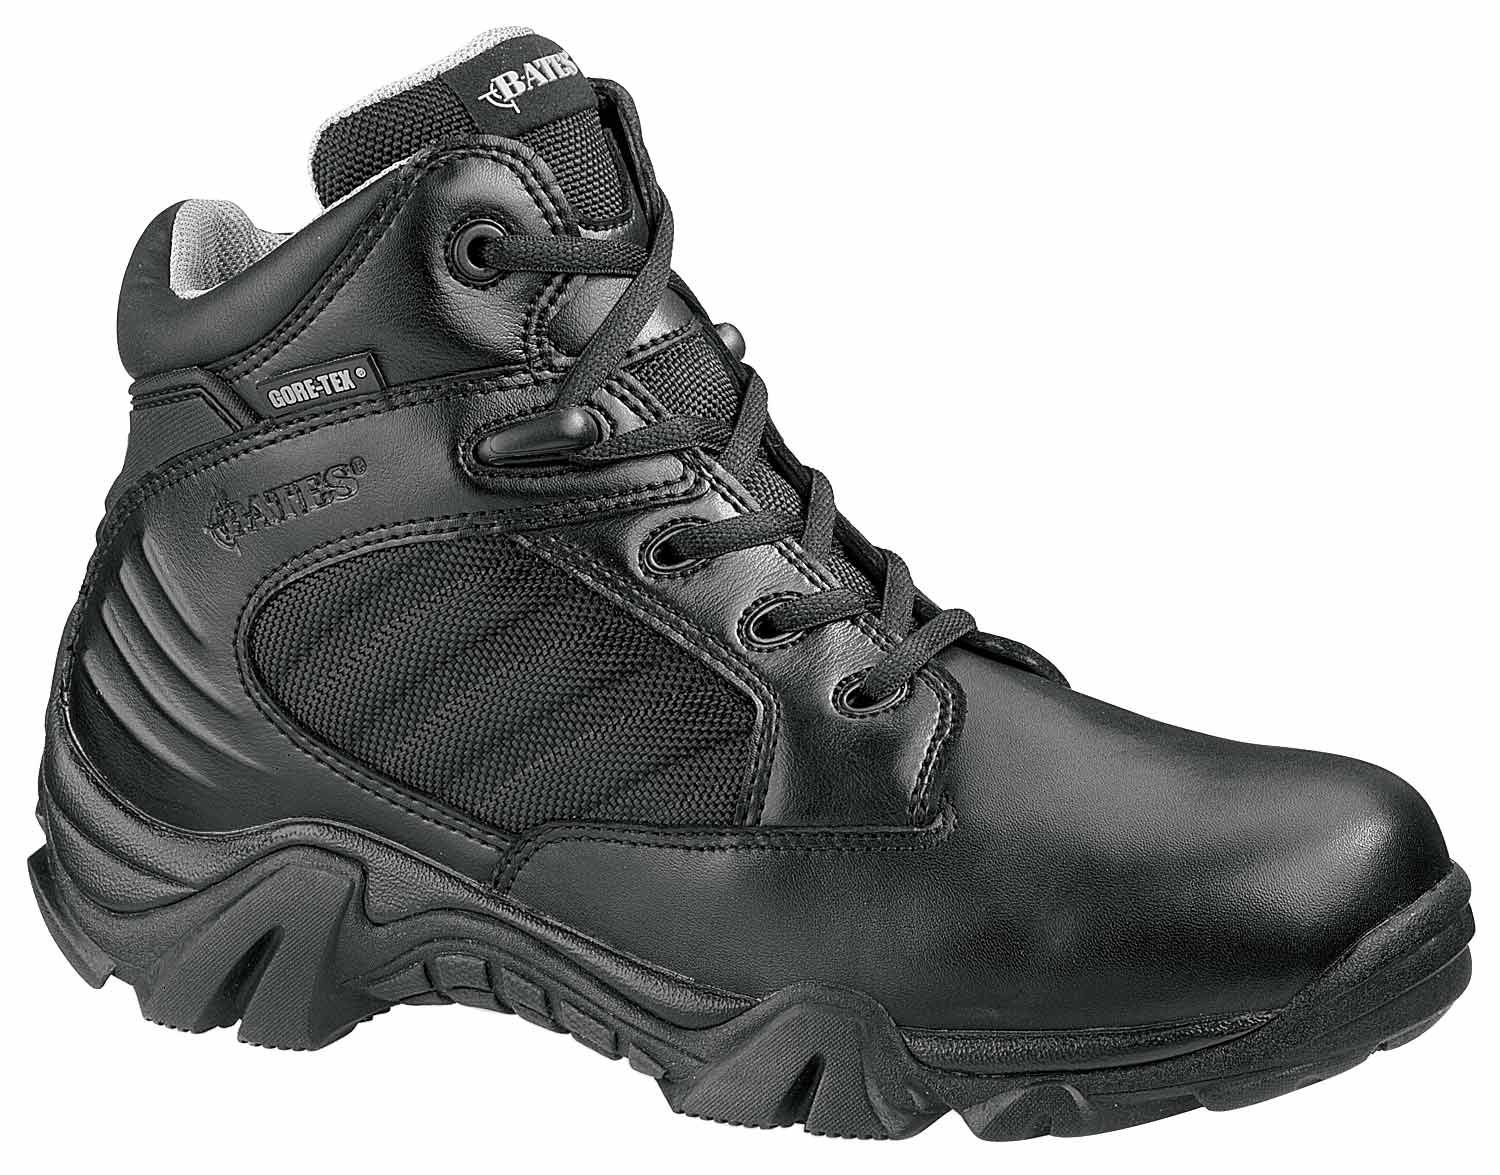 "Bates E02266 Gx-4 4""Gore-Tex Black Boots at Sears.com"